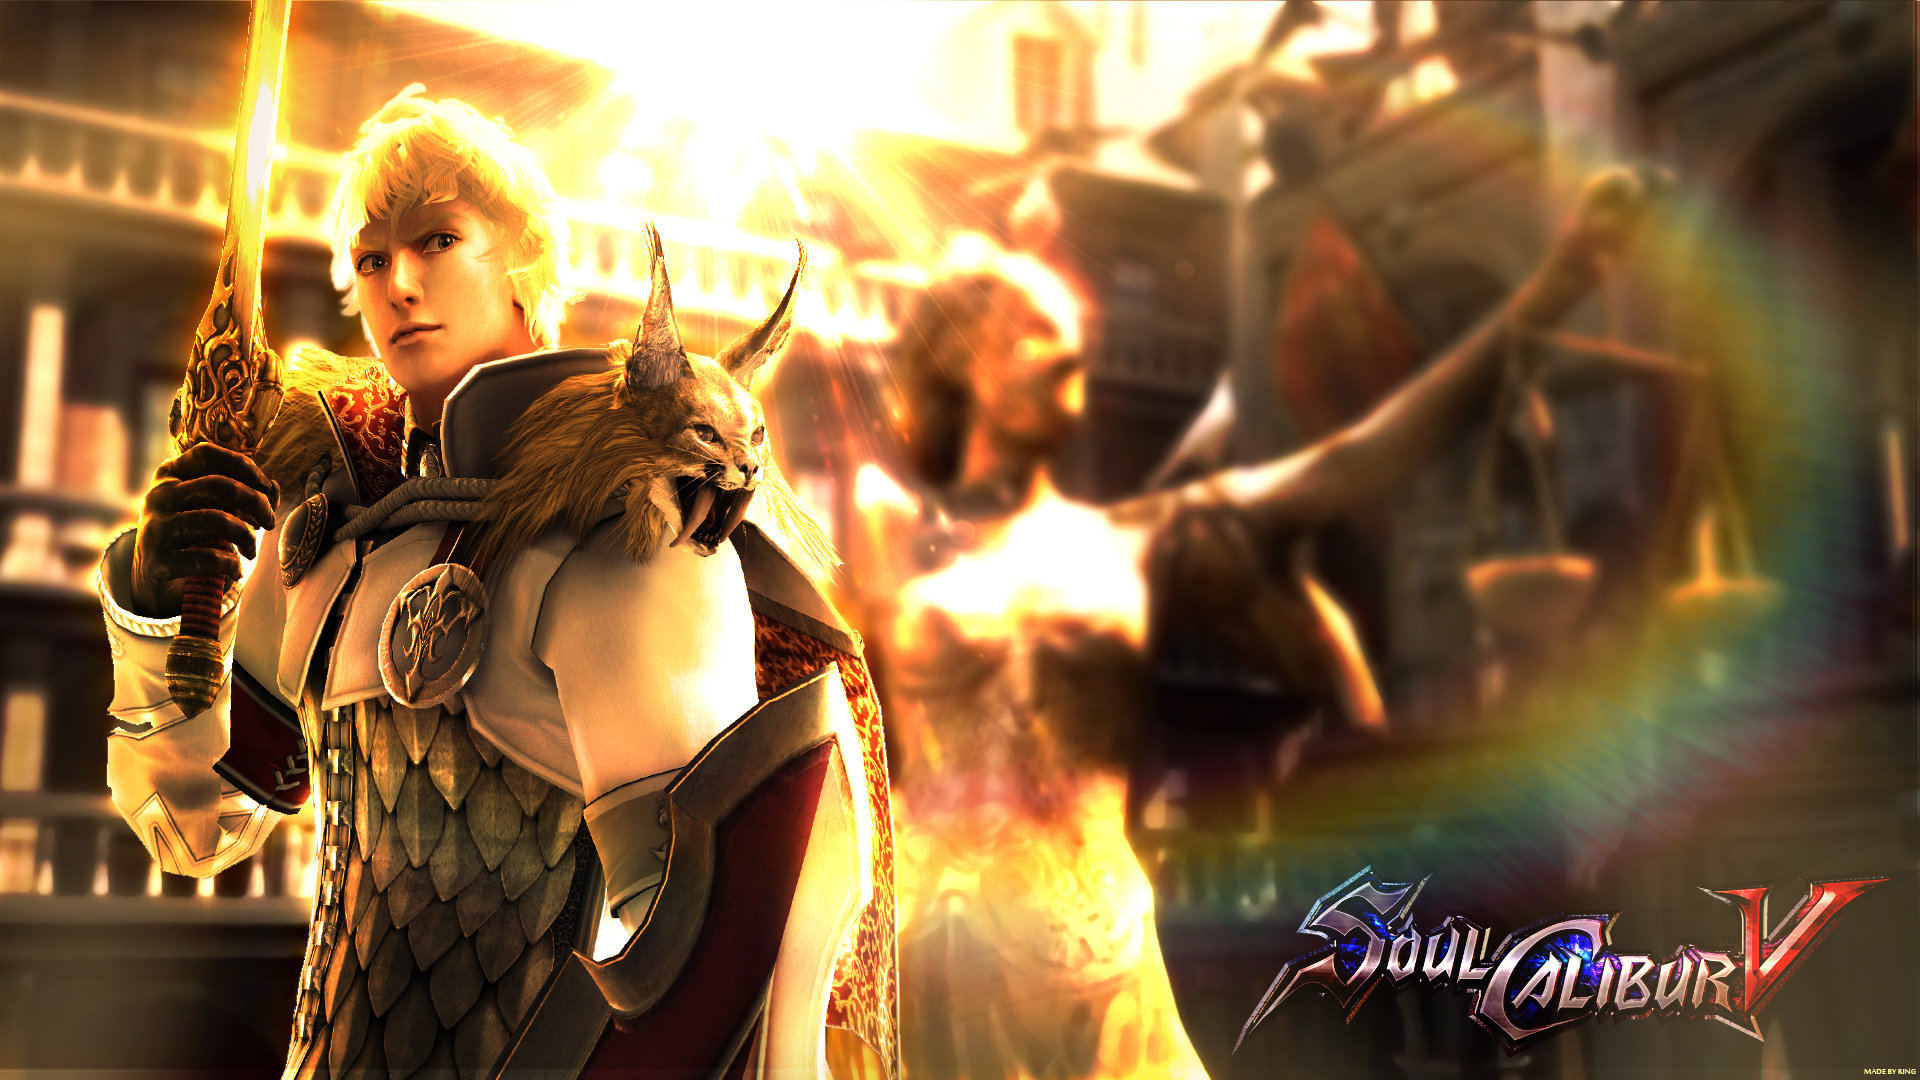 Download hd 1080p Soulcalibur computer wallpaper ID:246555 for free